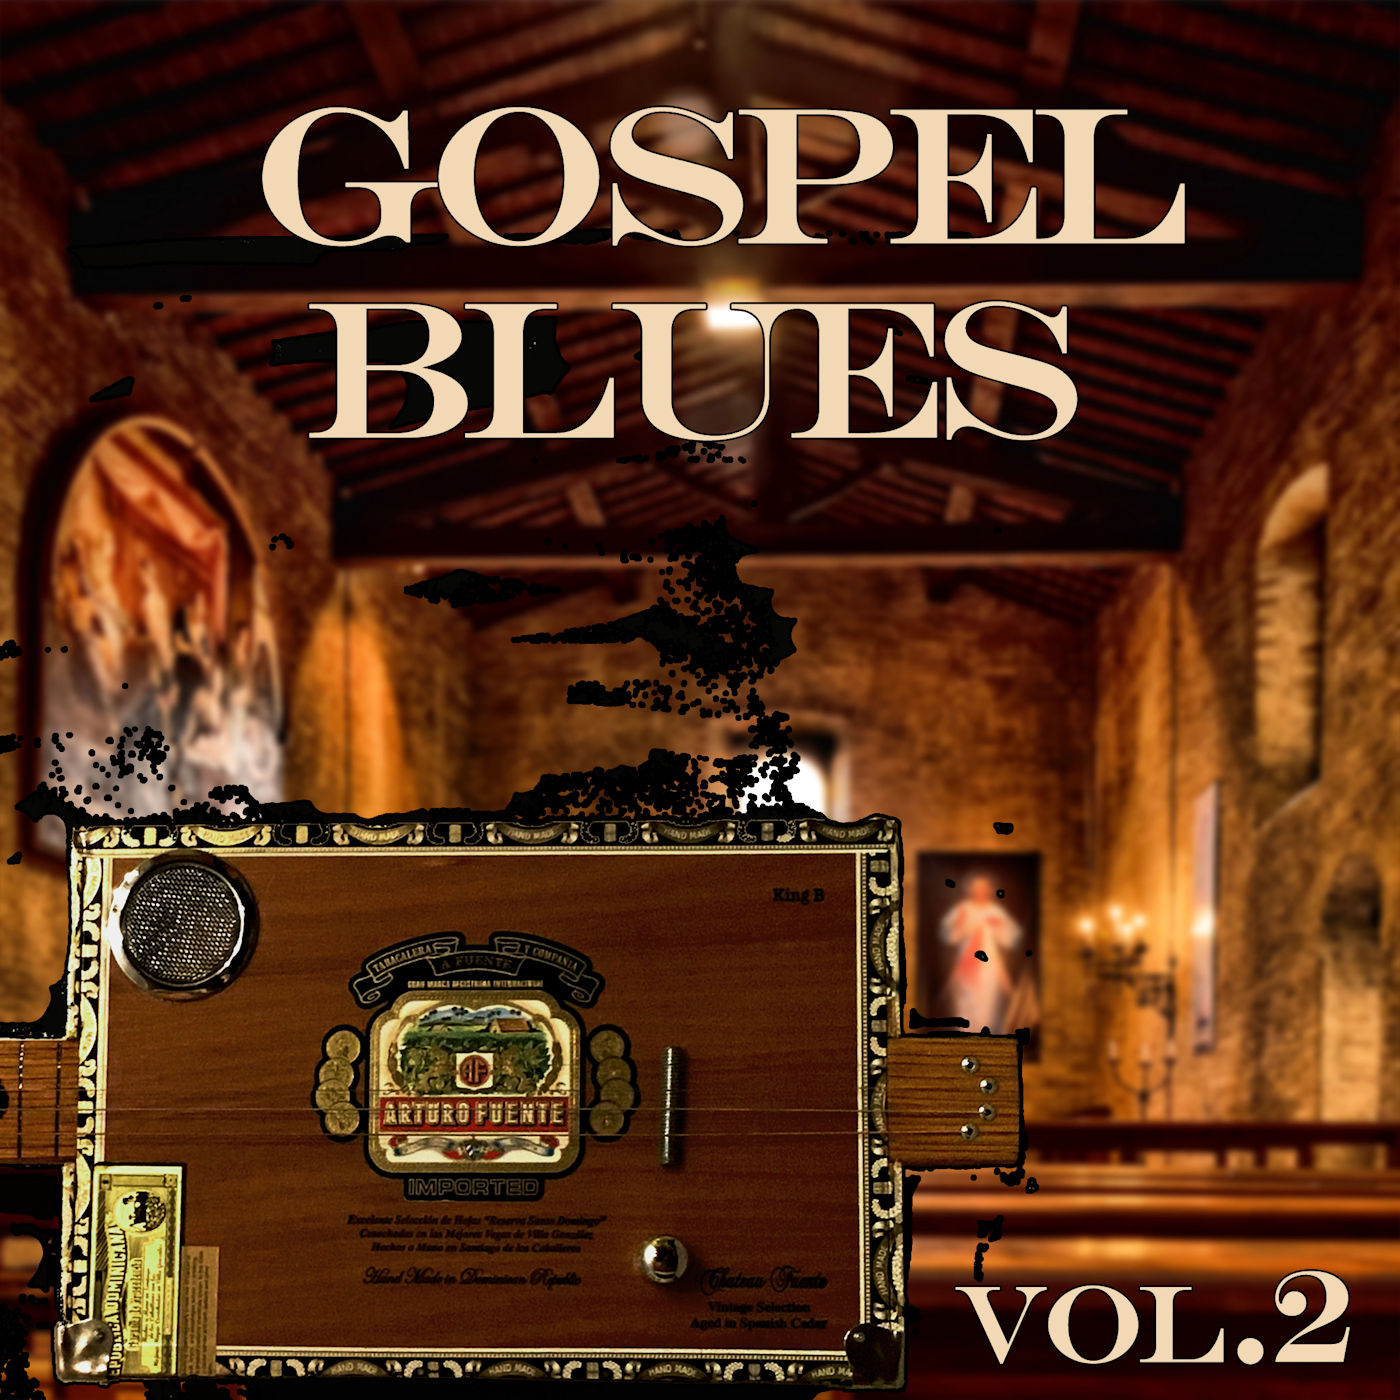 Gospel Blues Vol. 2